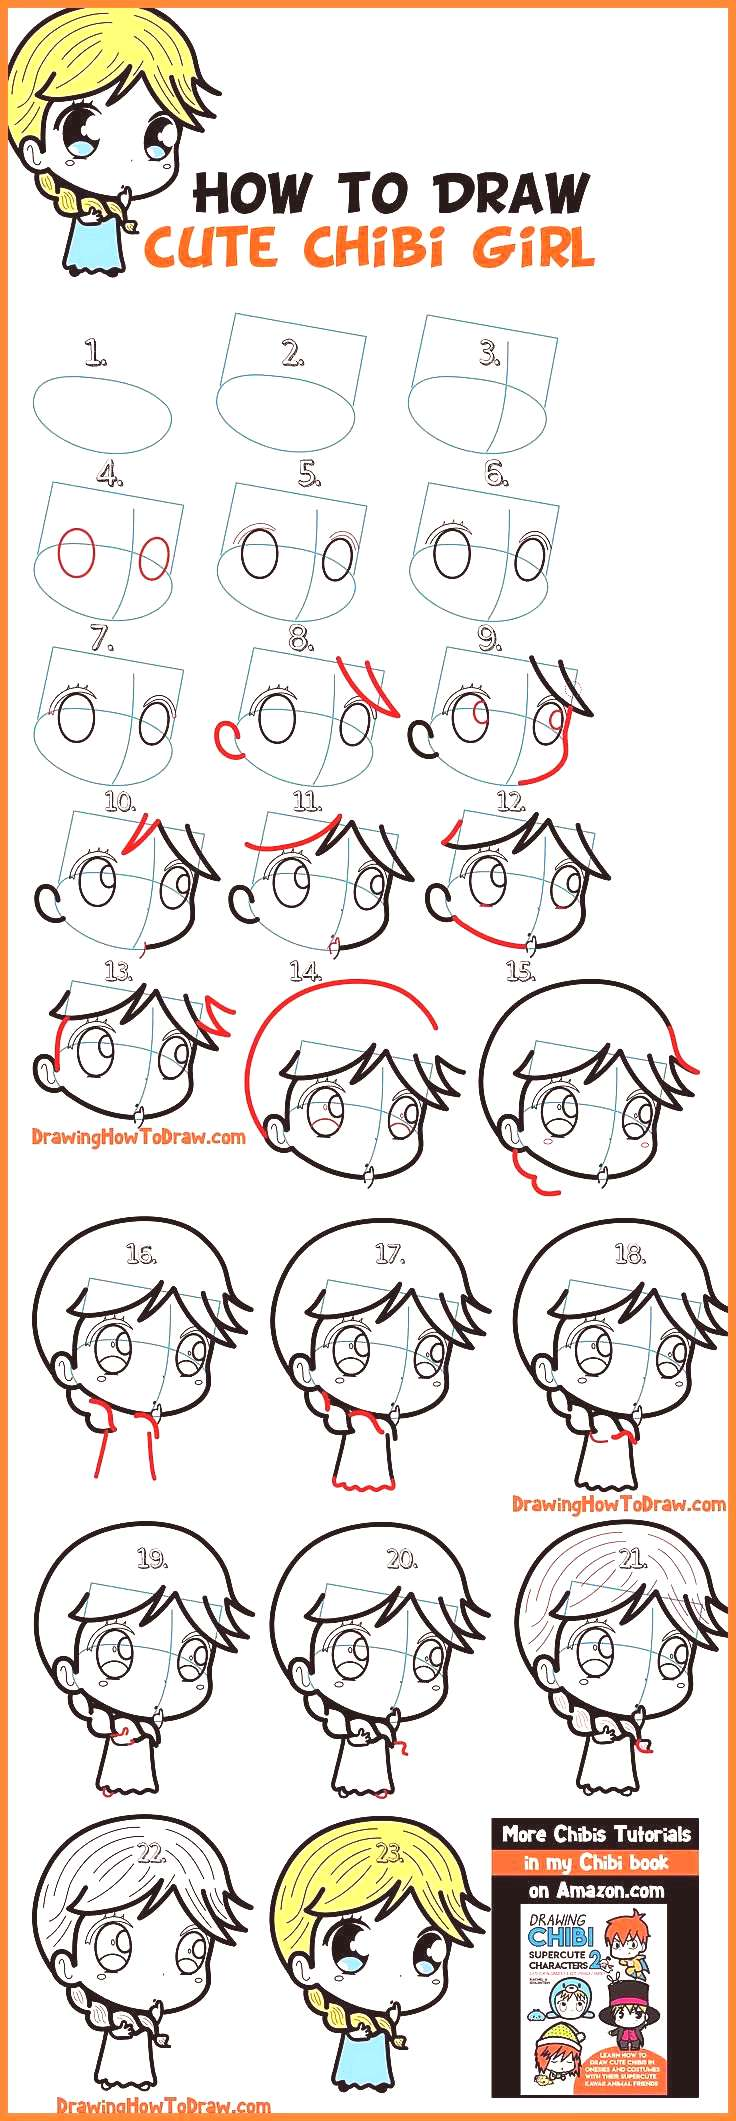 How to Draw a Supercute Chibi Girl with Easy Step by Step Drawing Lesson for Kids 038 Beginners How